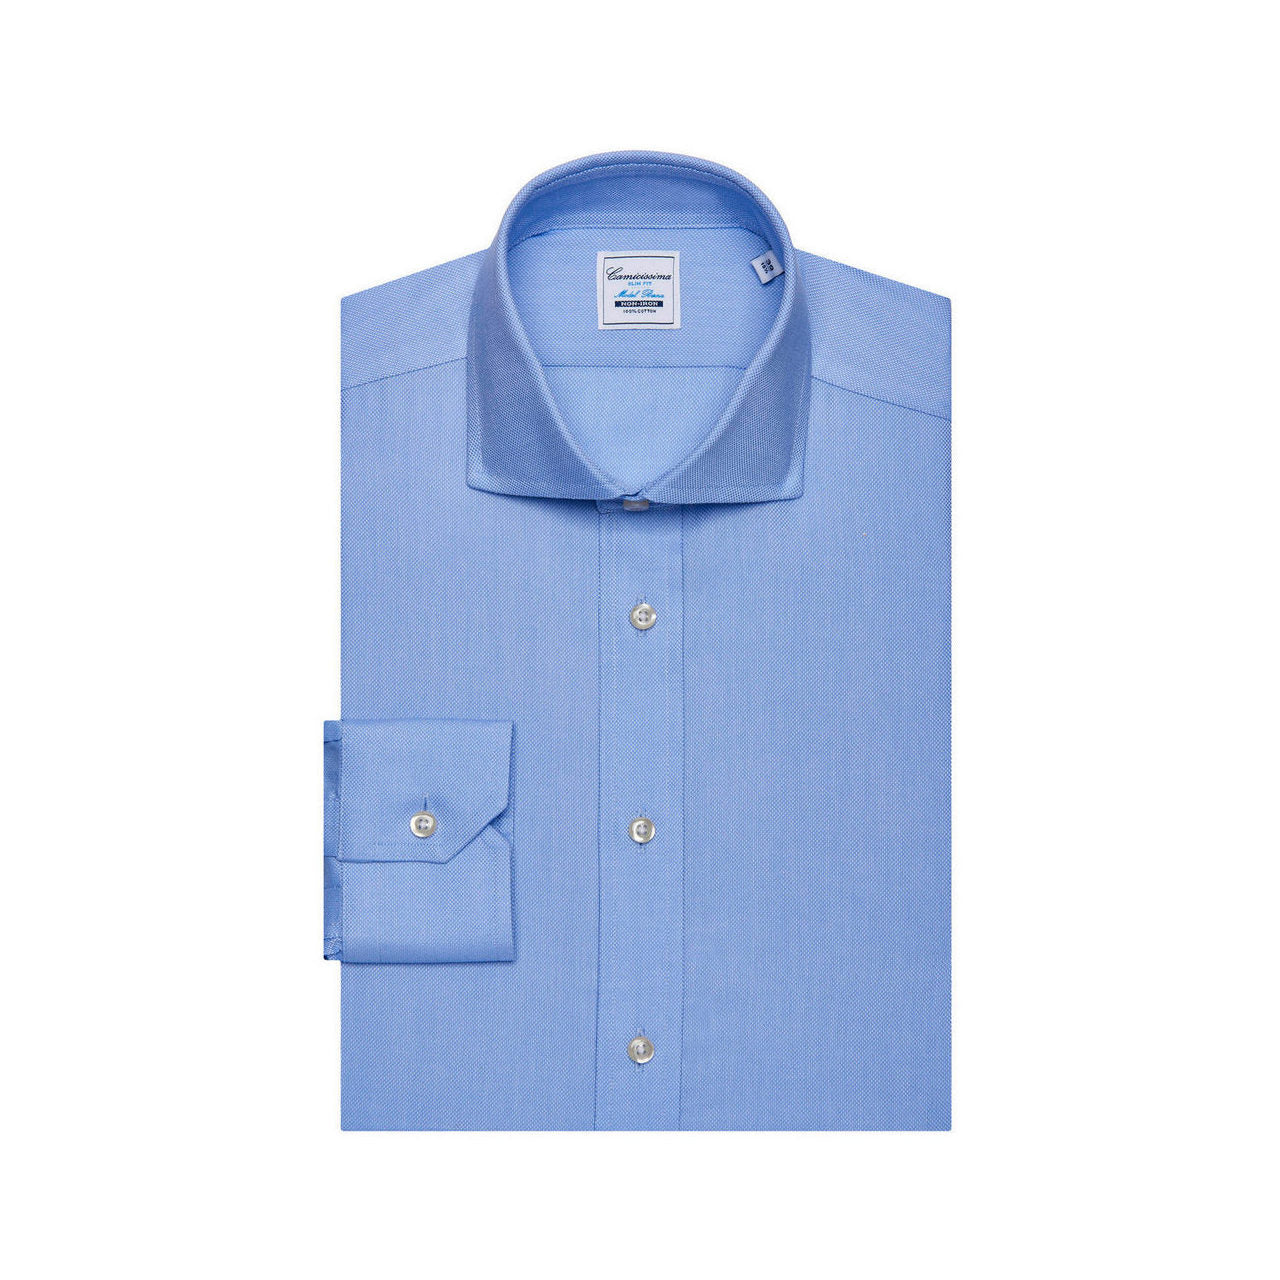 CAMICIA CAMICISSIMA BERNA011754LIGHT BLUE | Fronte | Salotto Shop